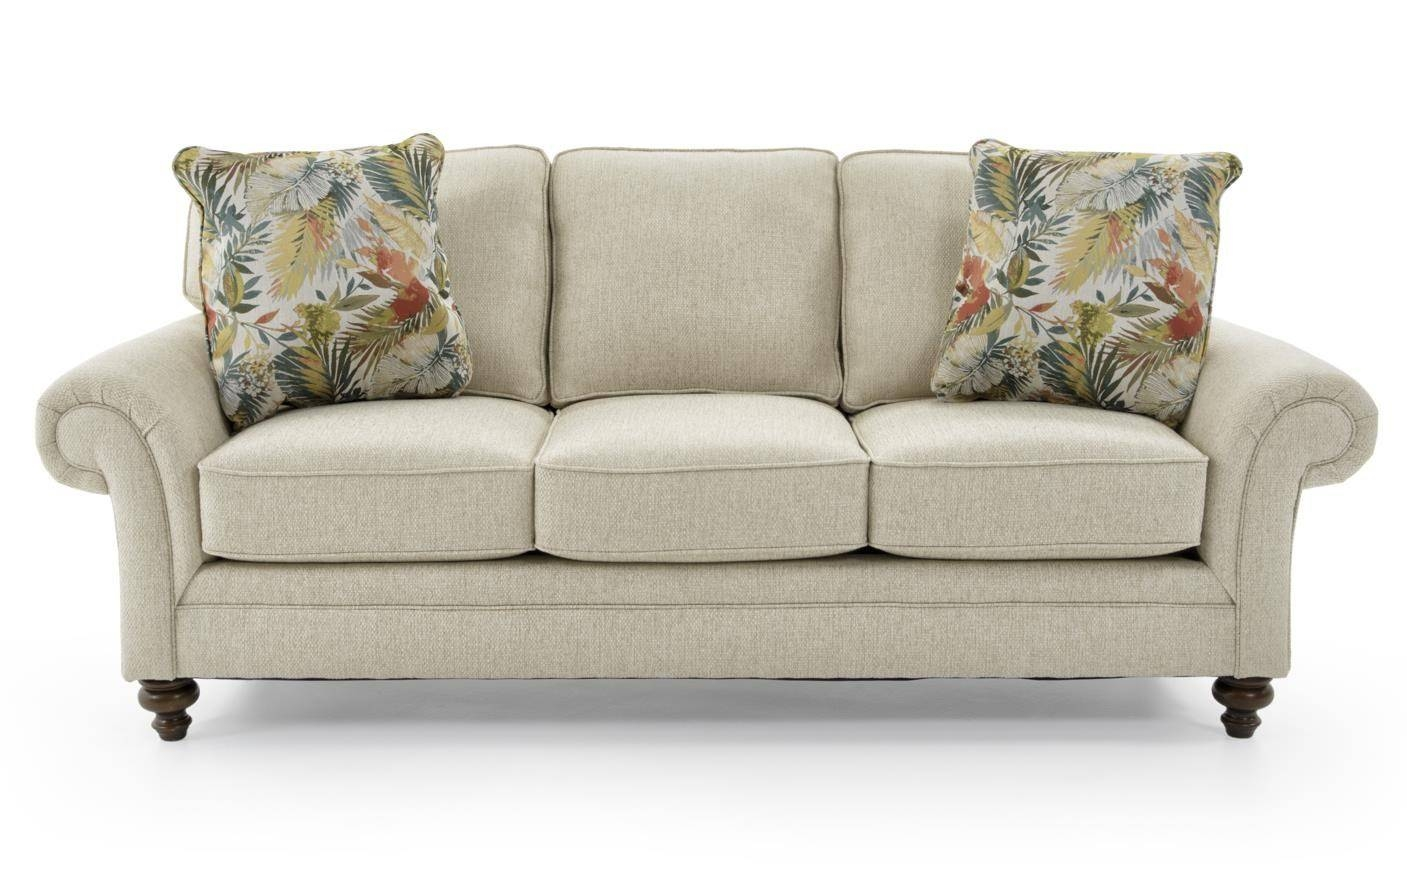 Broyhill Furniture Larissa Upholstered Stationary Sofa With Rolled Within Broyhill Sofas (Photo 15 of 15)